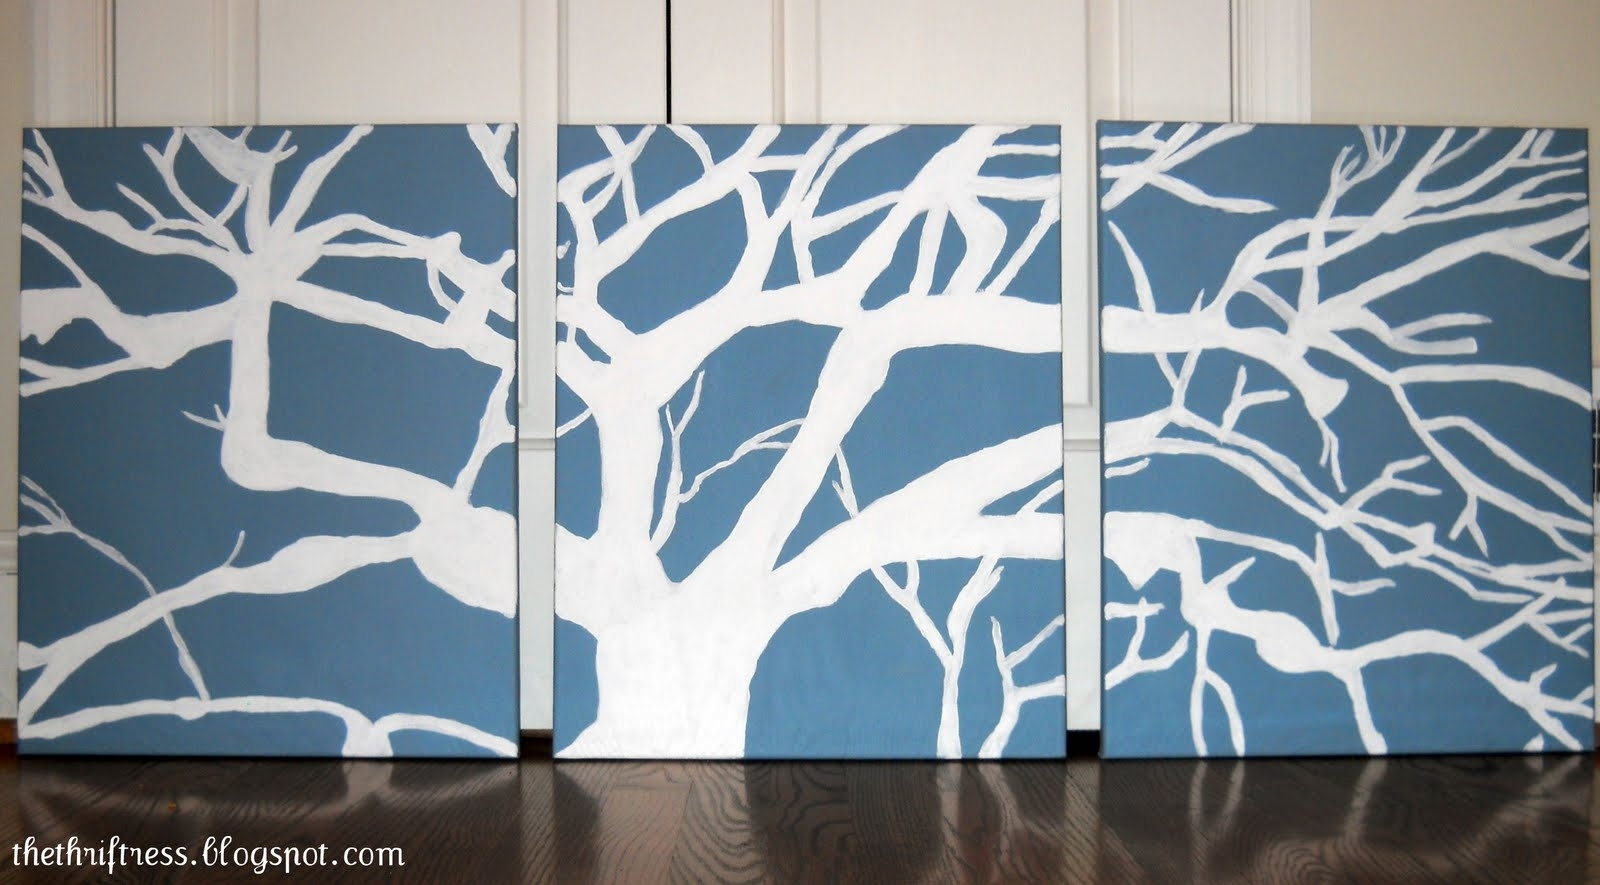 Diy Wall Art Stencils Paint Fabric – Dma Homes | #37854 Intended For Most Up To Date Diy Large Fabric Wall Art (View 6 of 15)